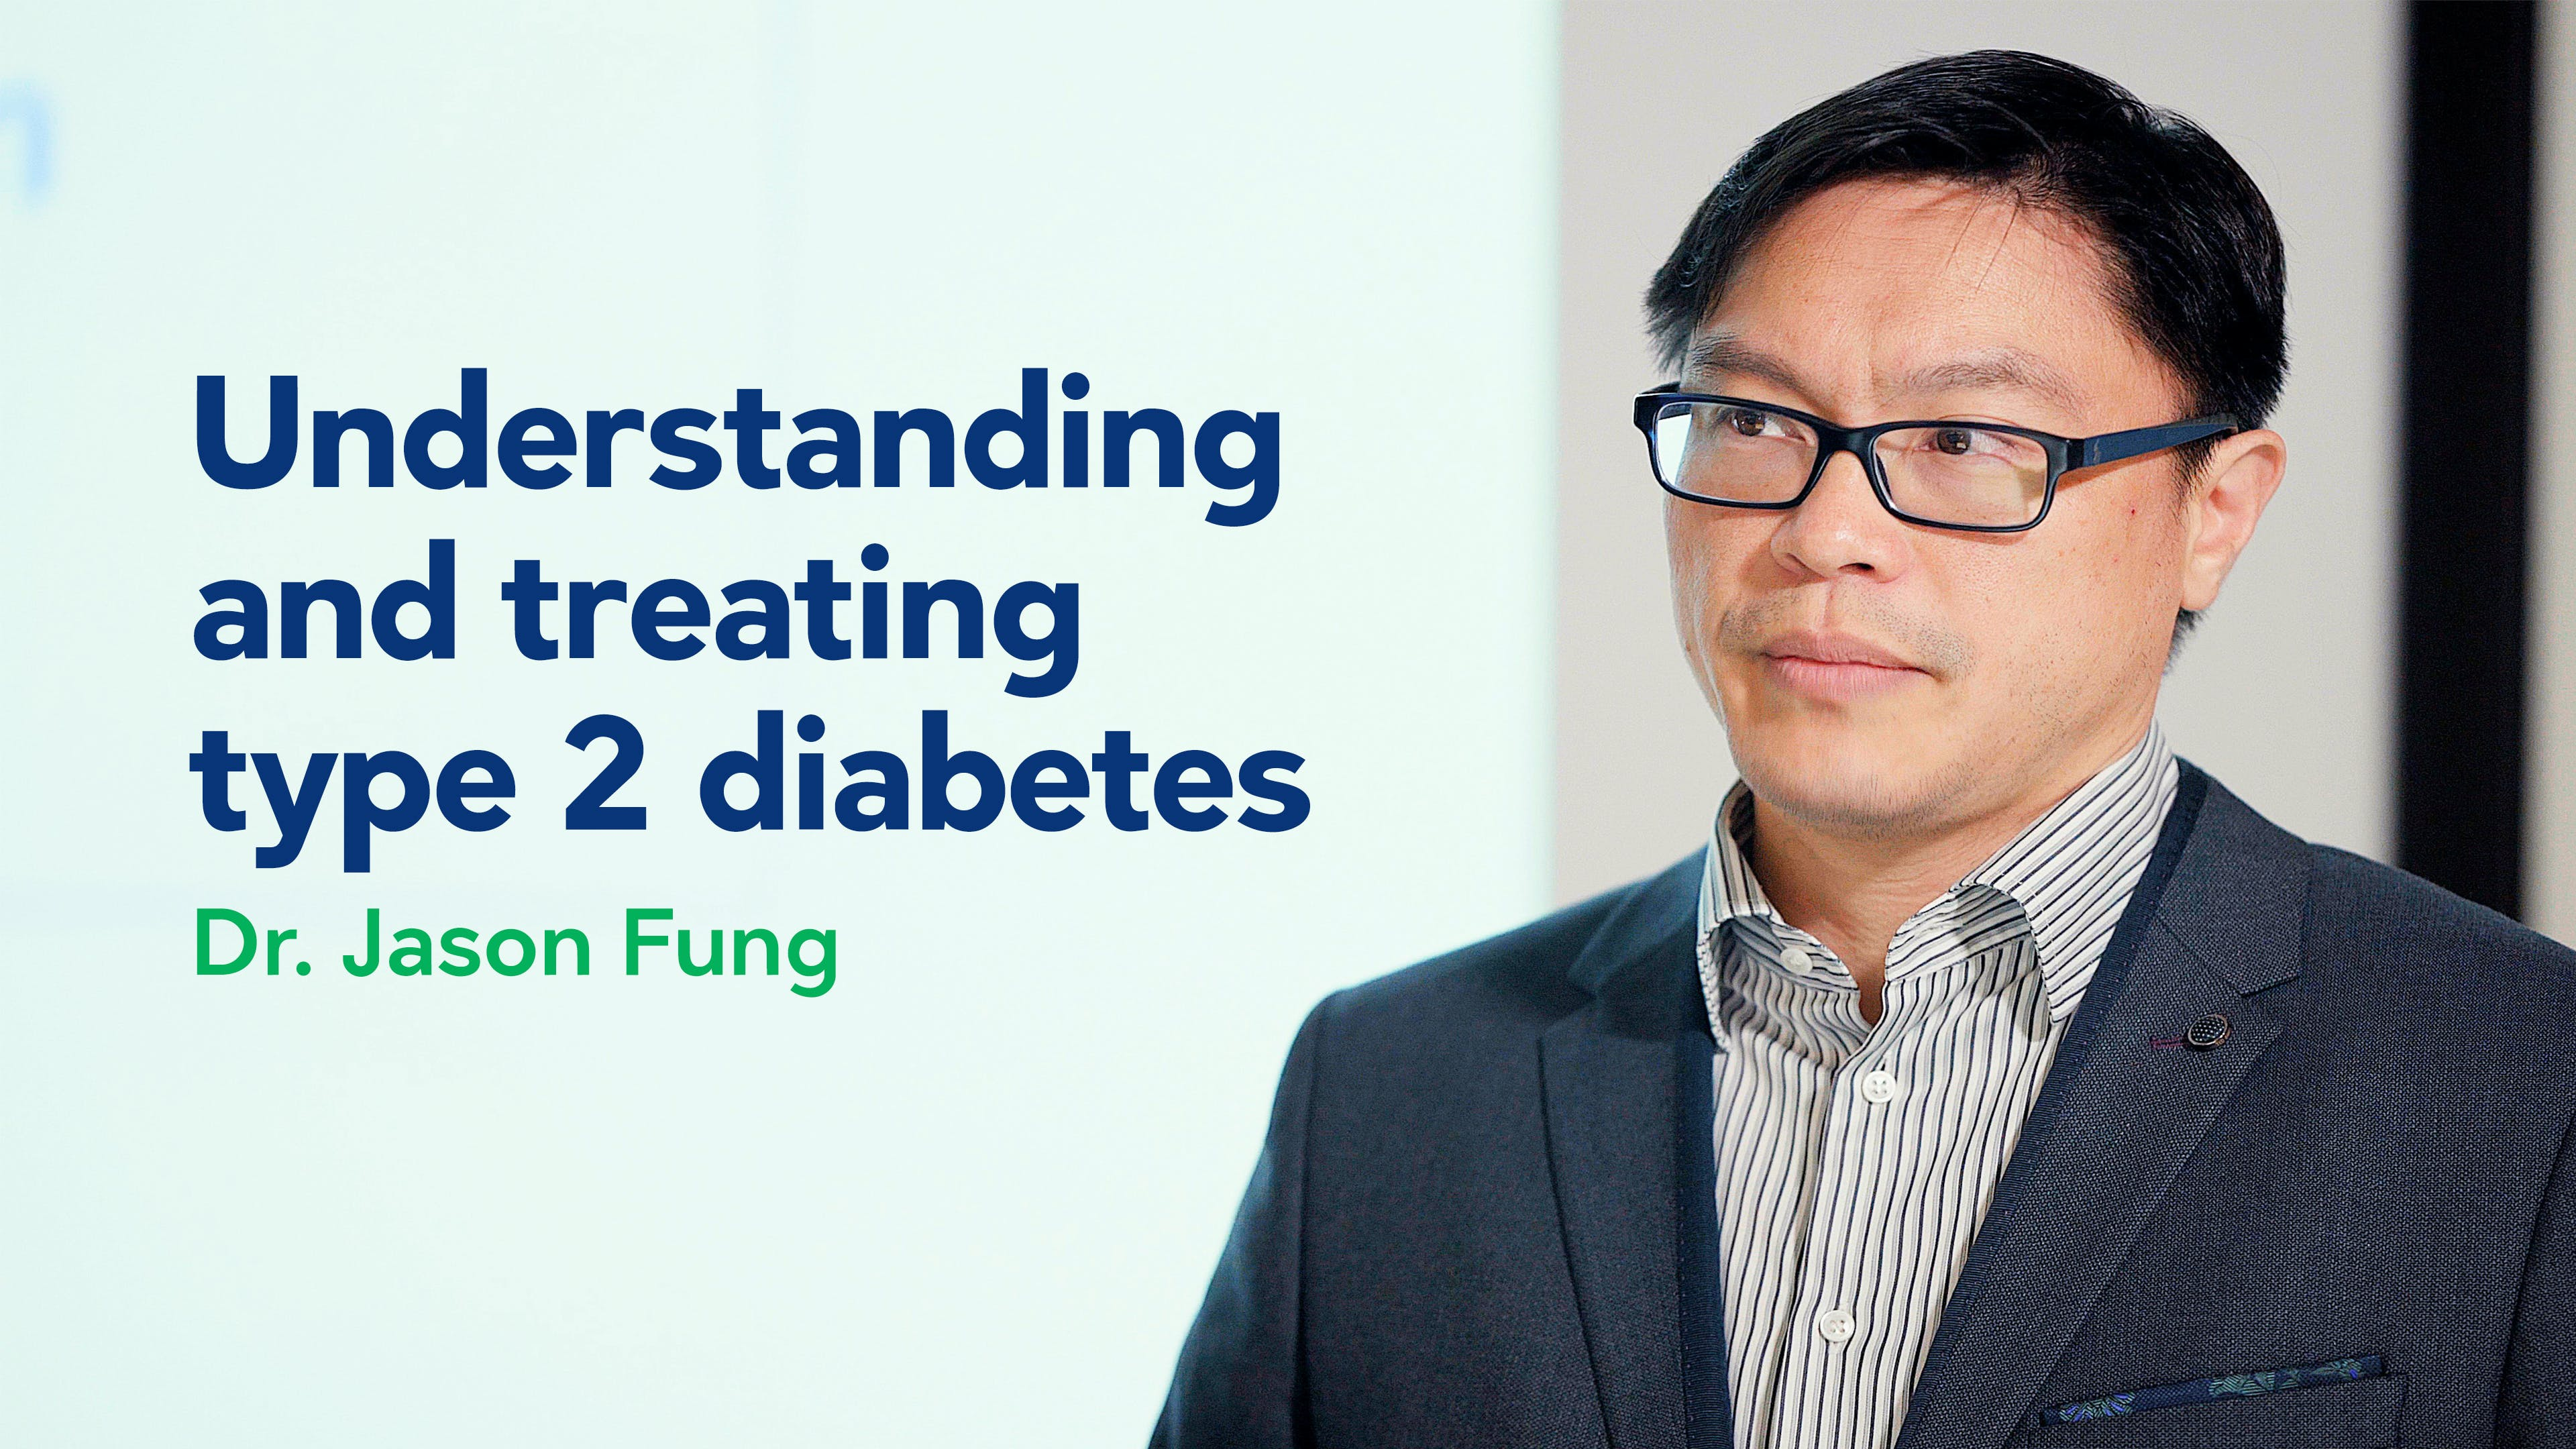 Understanding and treating type 2 diabetes – Dr. Jason Fung